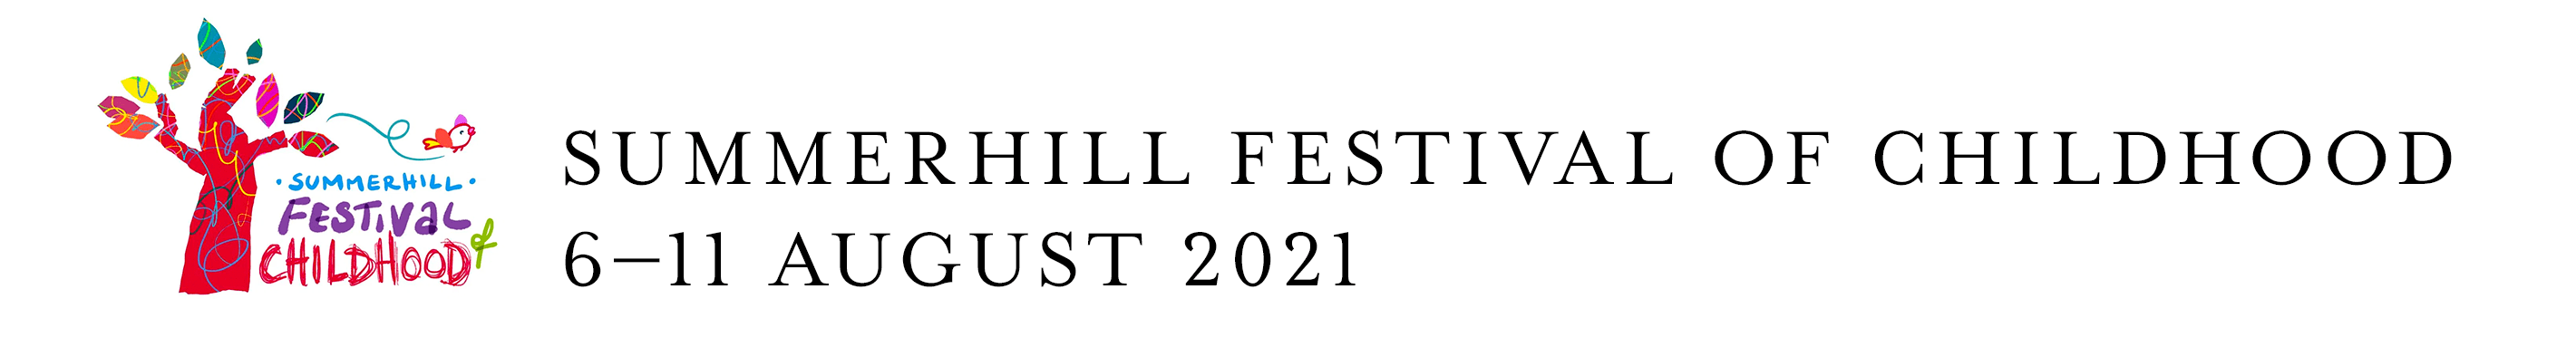 Summerhill Festival of Childhood - 6-11 August 2021